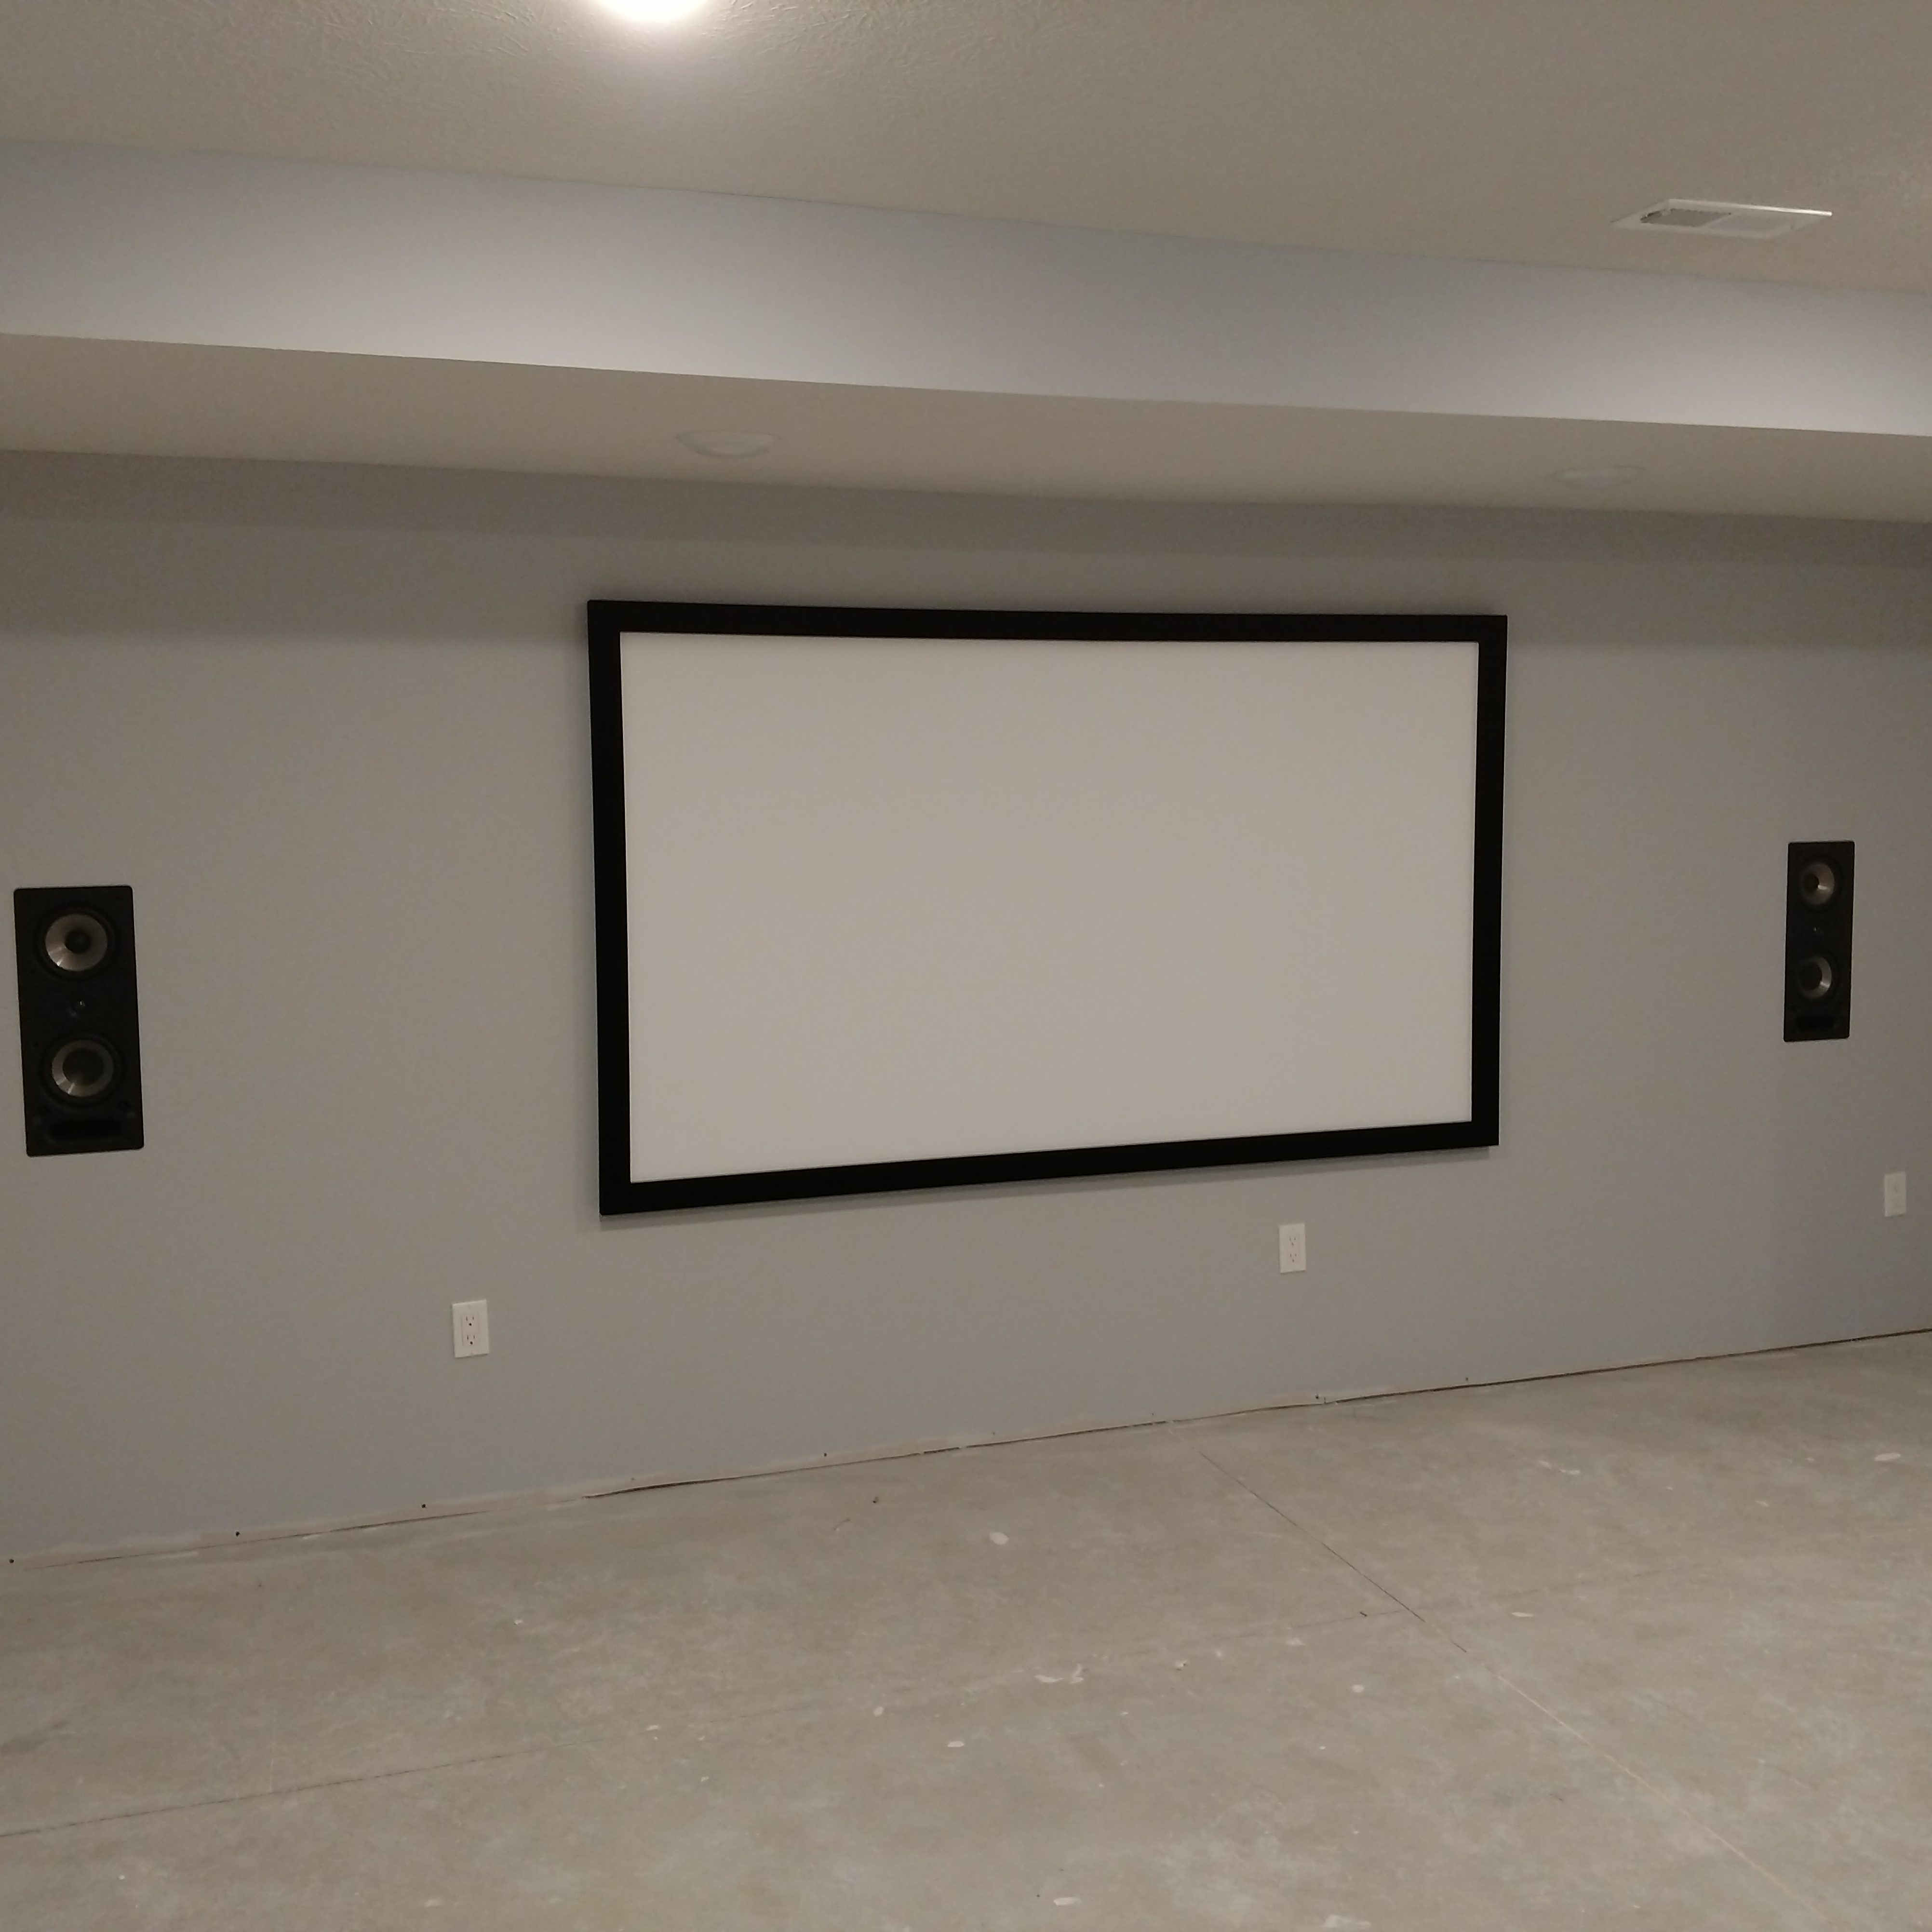 Custom wiring done for built in wall speakers.